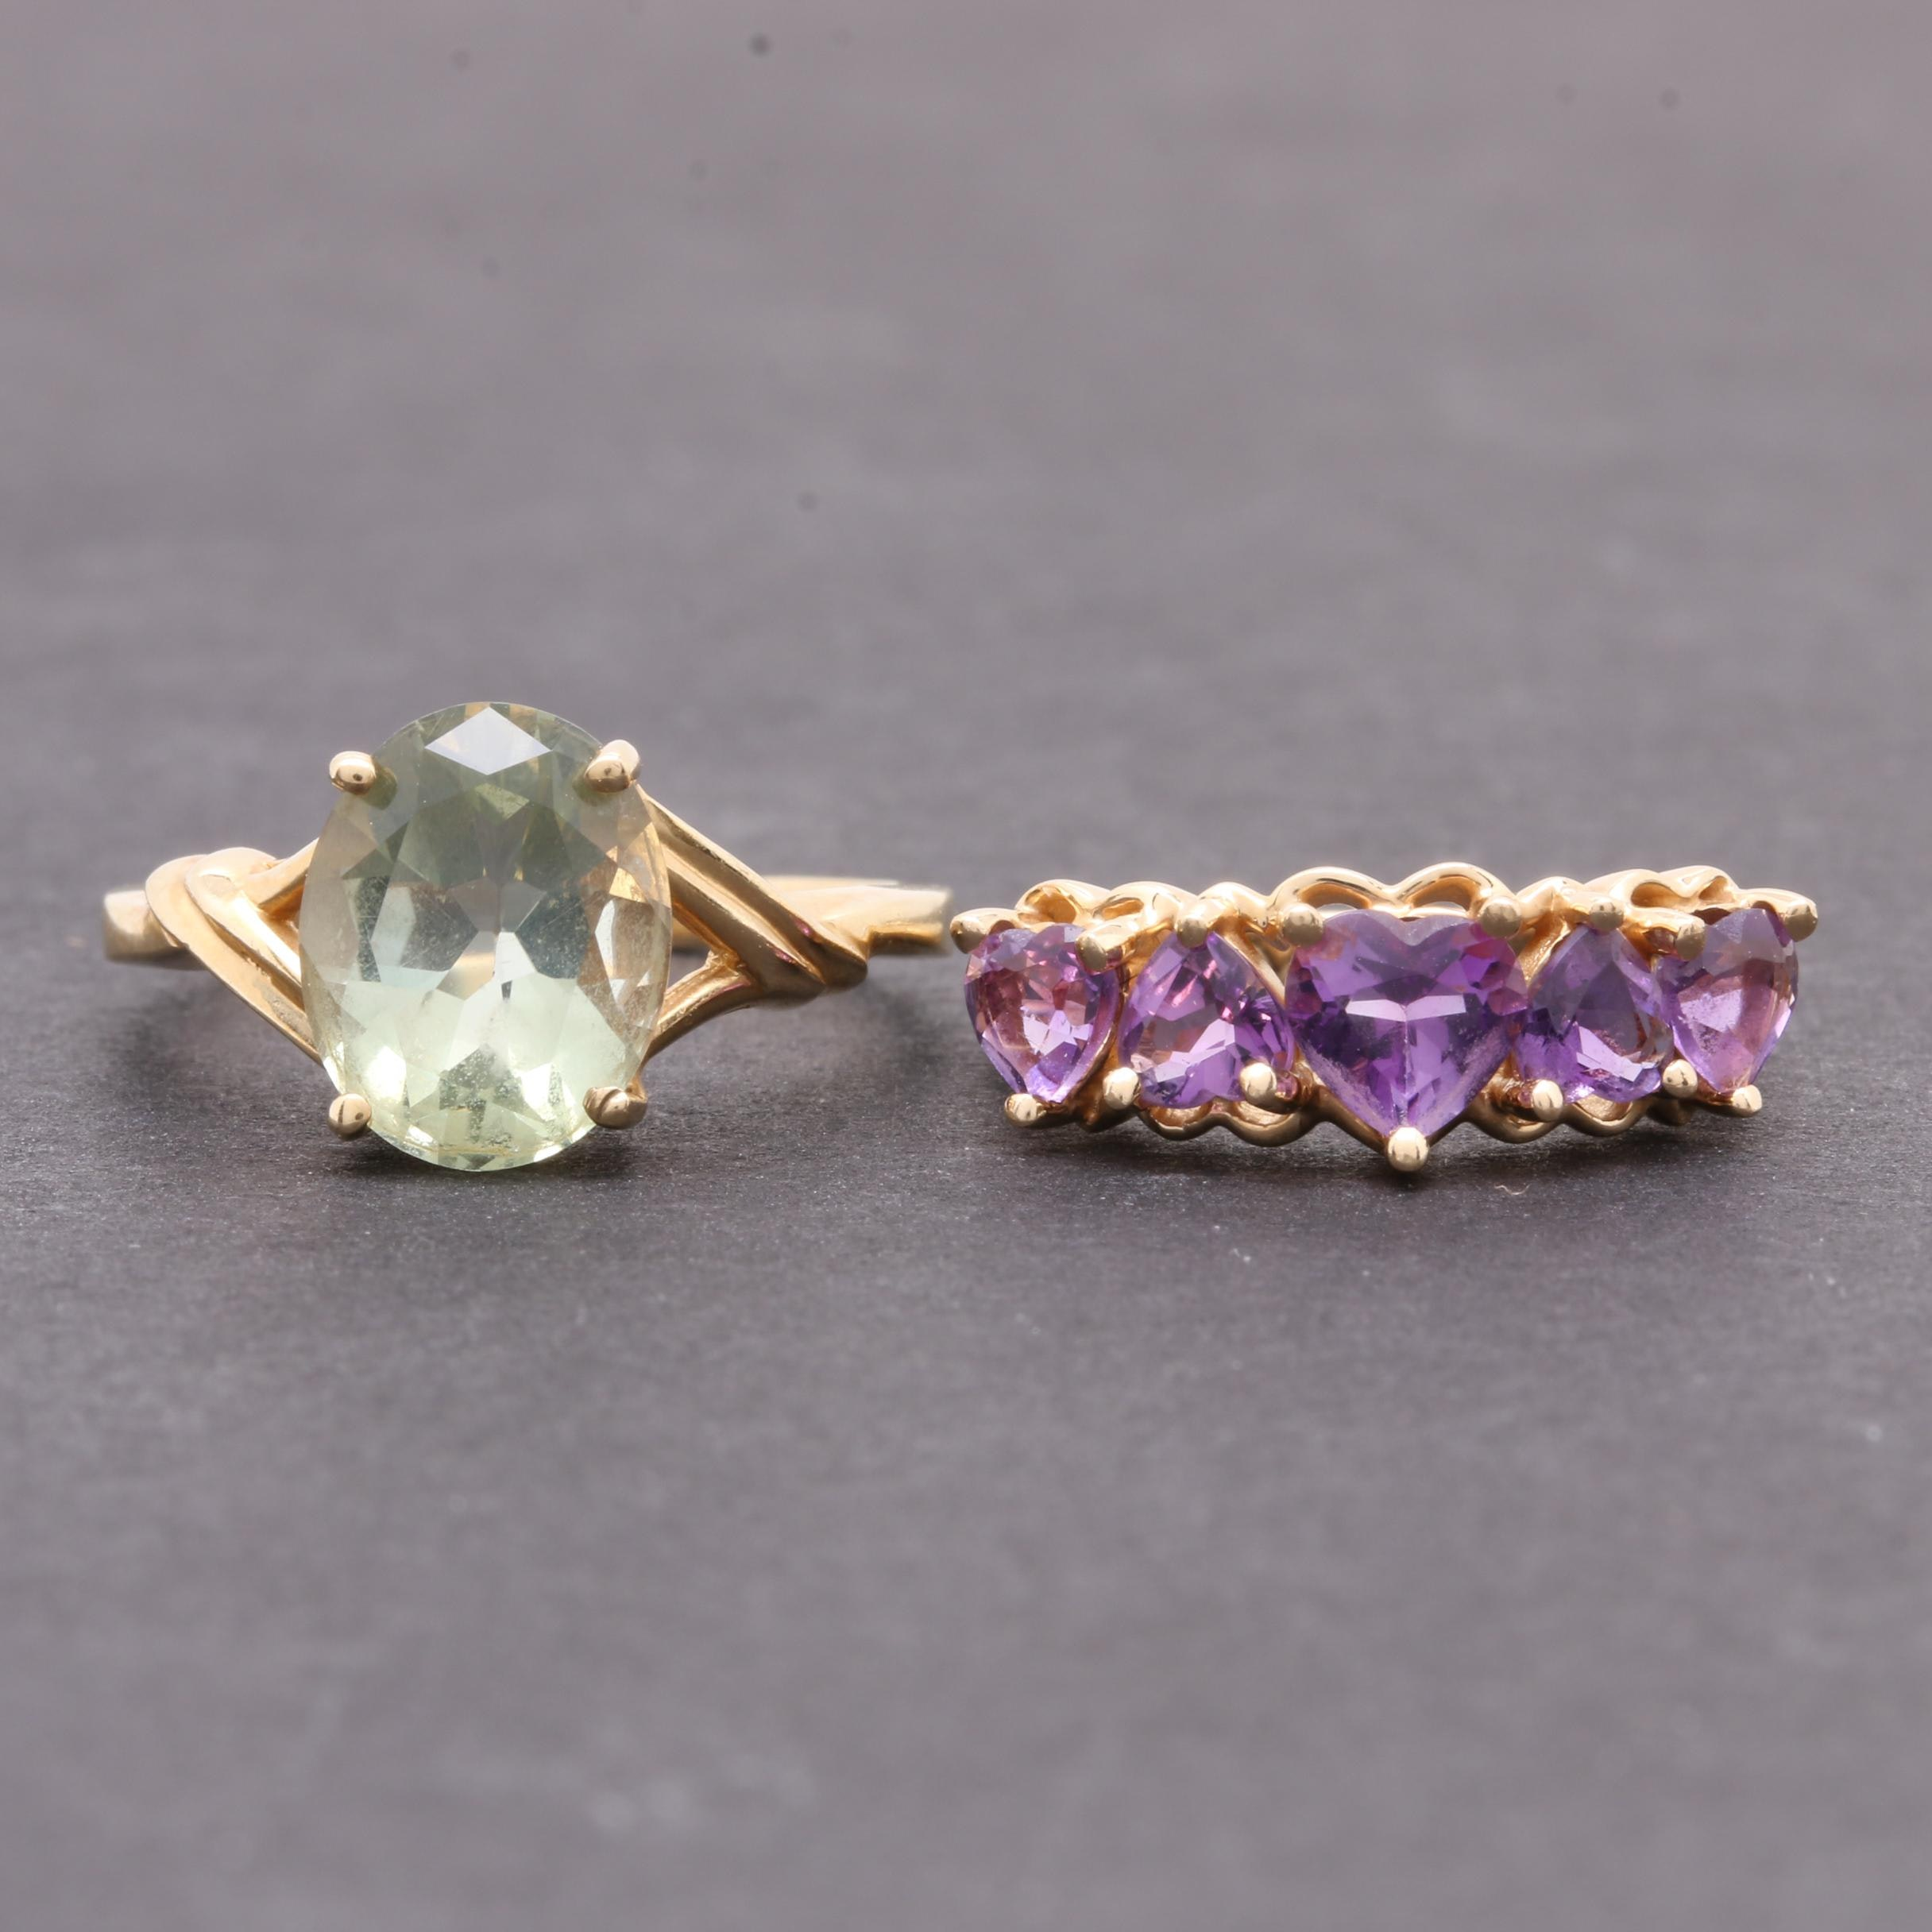 14K Yellow Gold Amethyst and 10K Yellow Gold Praseolite Ring Assortment